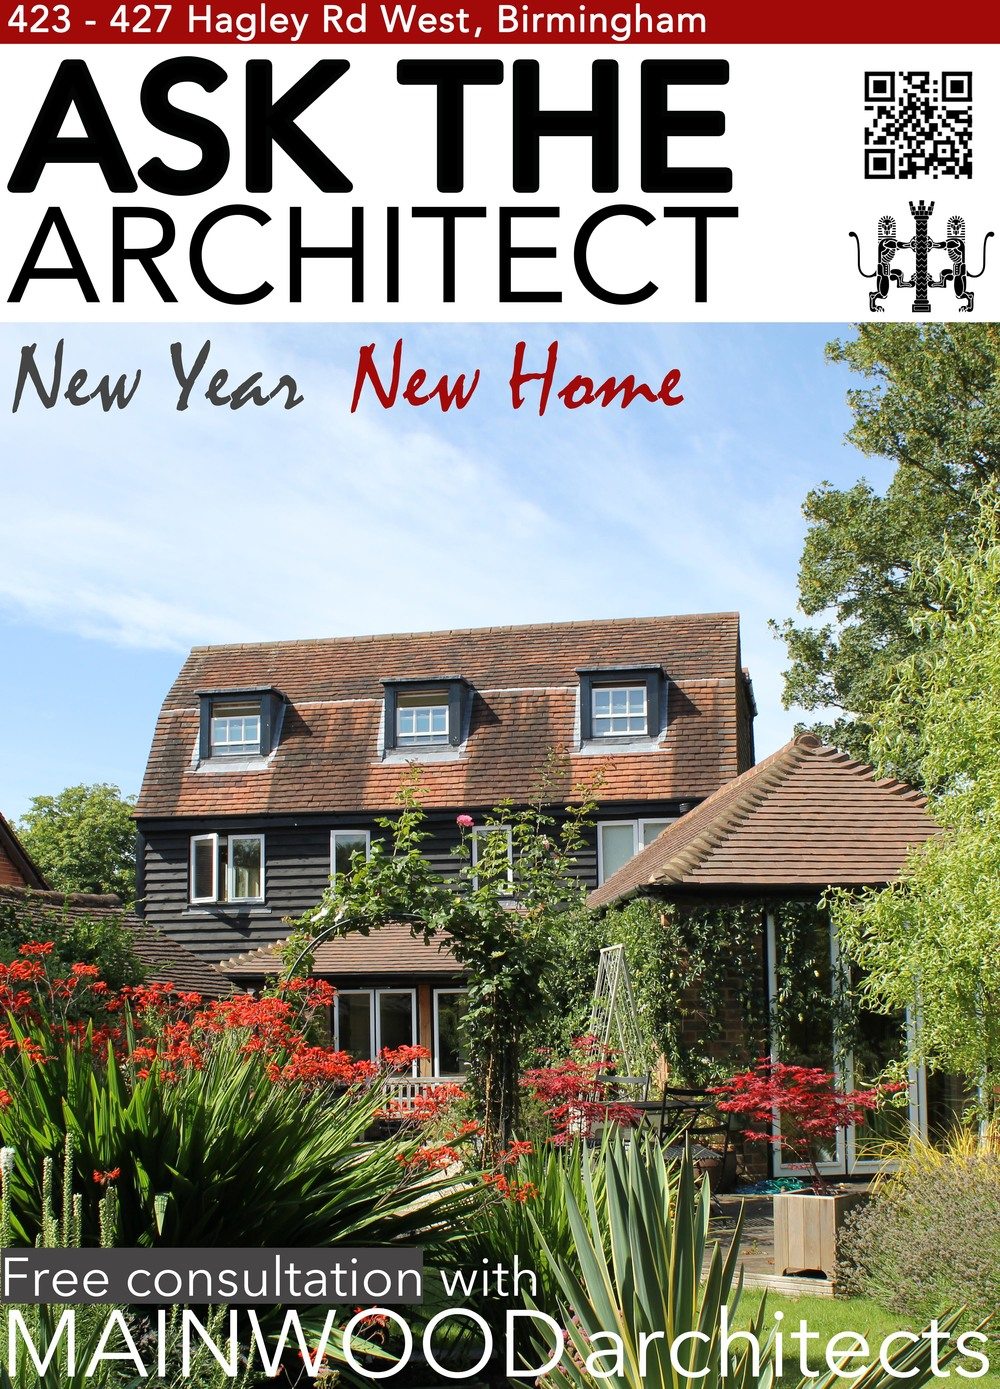 ASK THE ARCHITECT Free Consultation with Mainwood Architects Birmingham